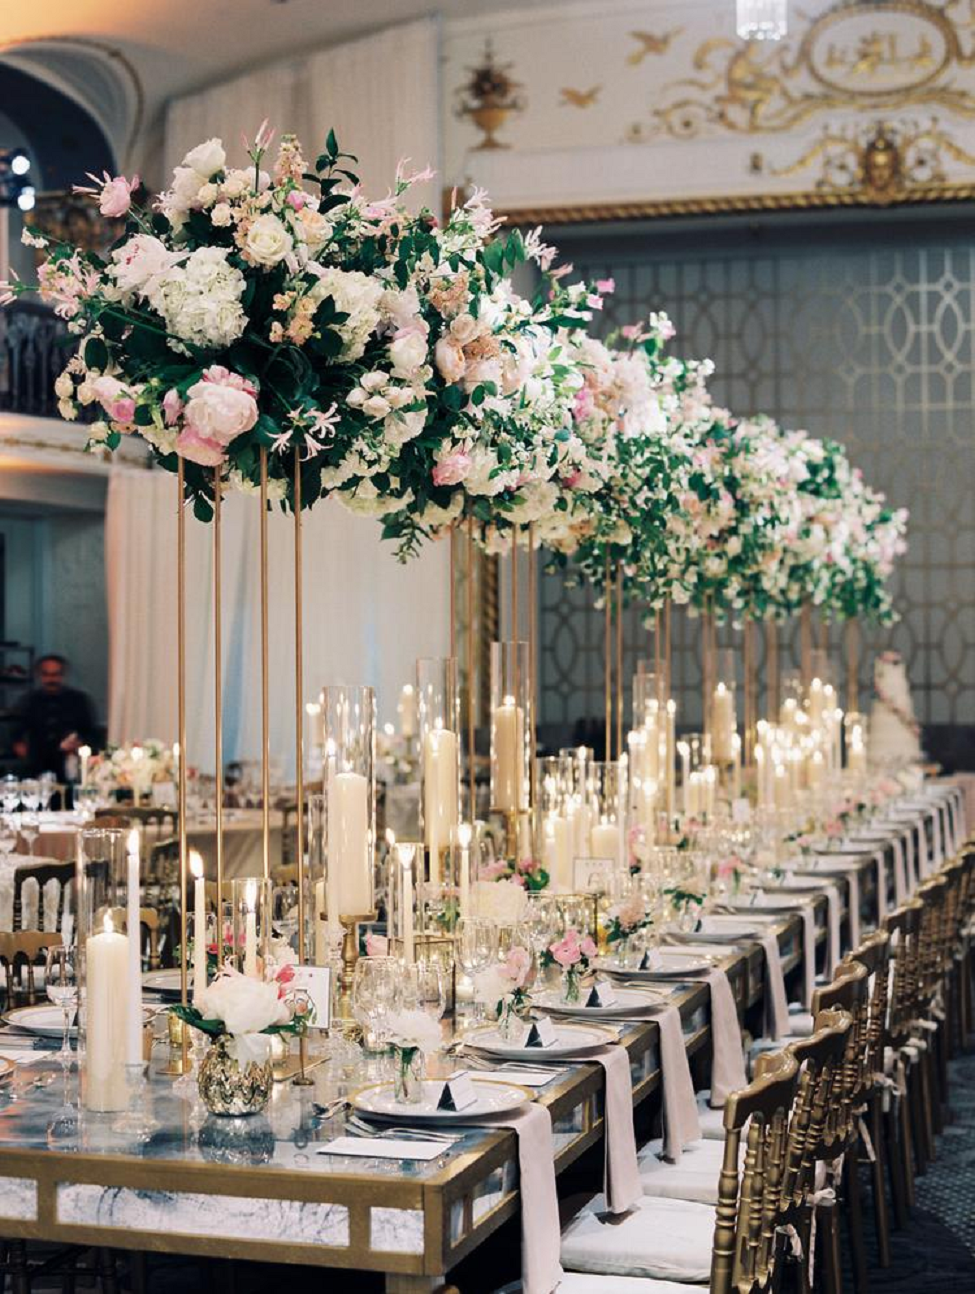 Bling wedding receptions A Floral-Filled Wedding Dining Hall